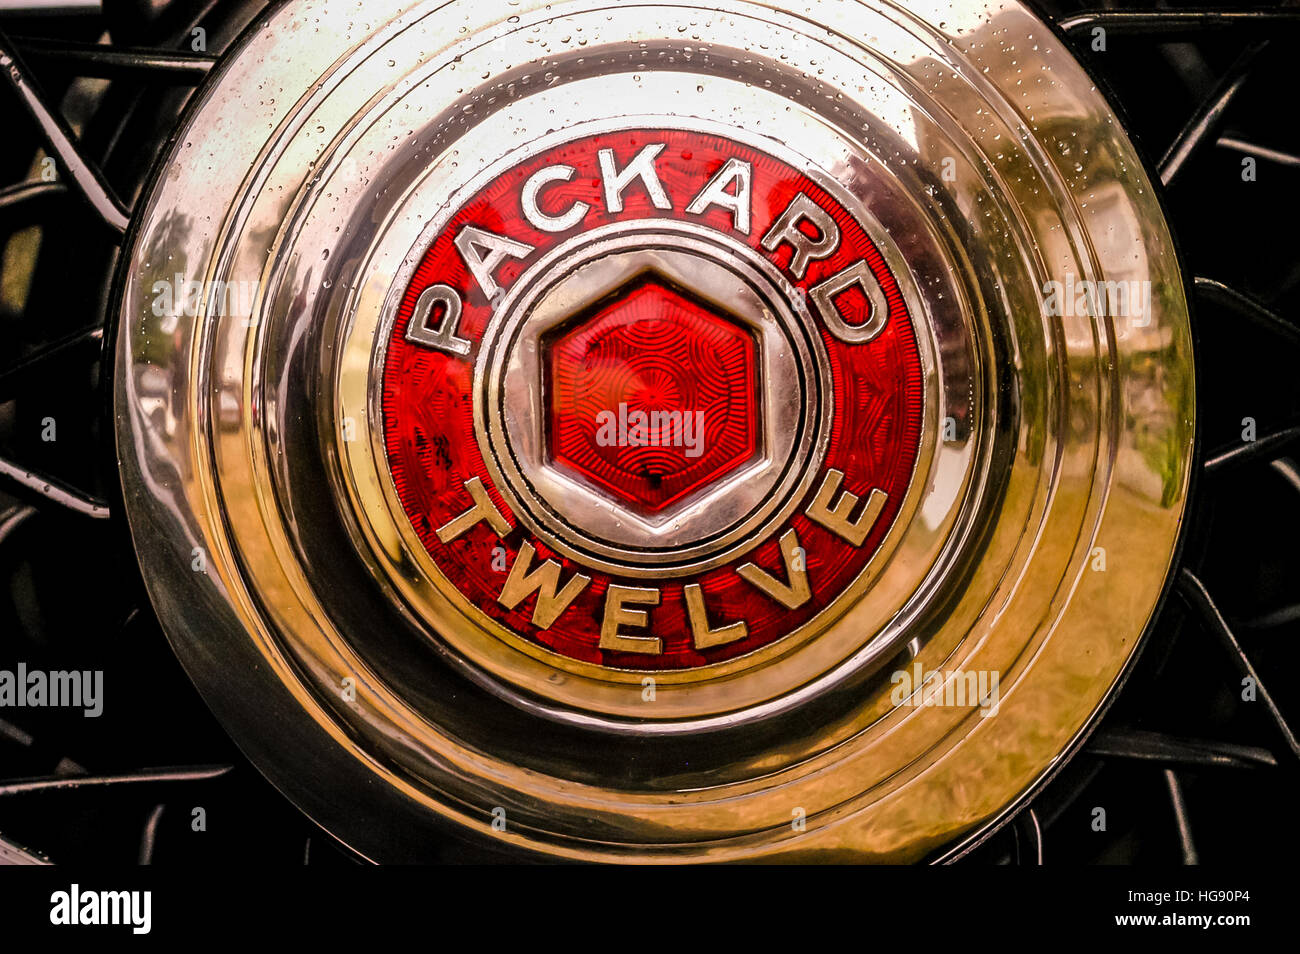 The car marque of Packard Twelve - Stock Image